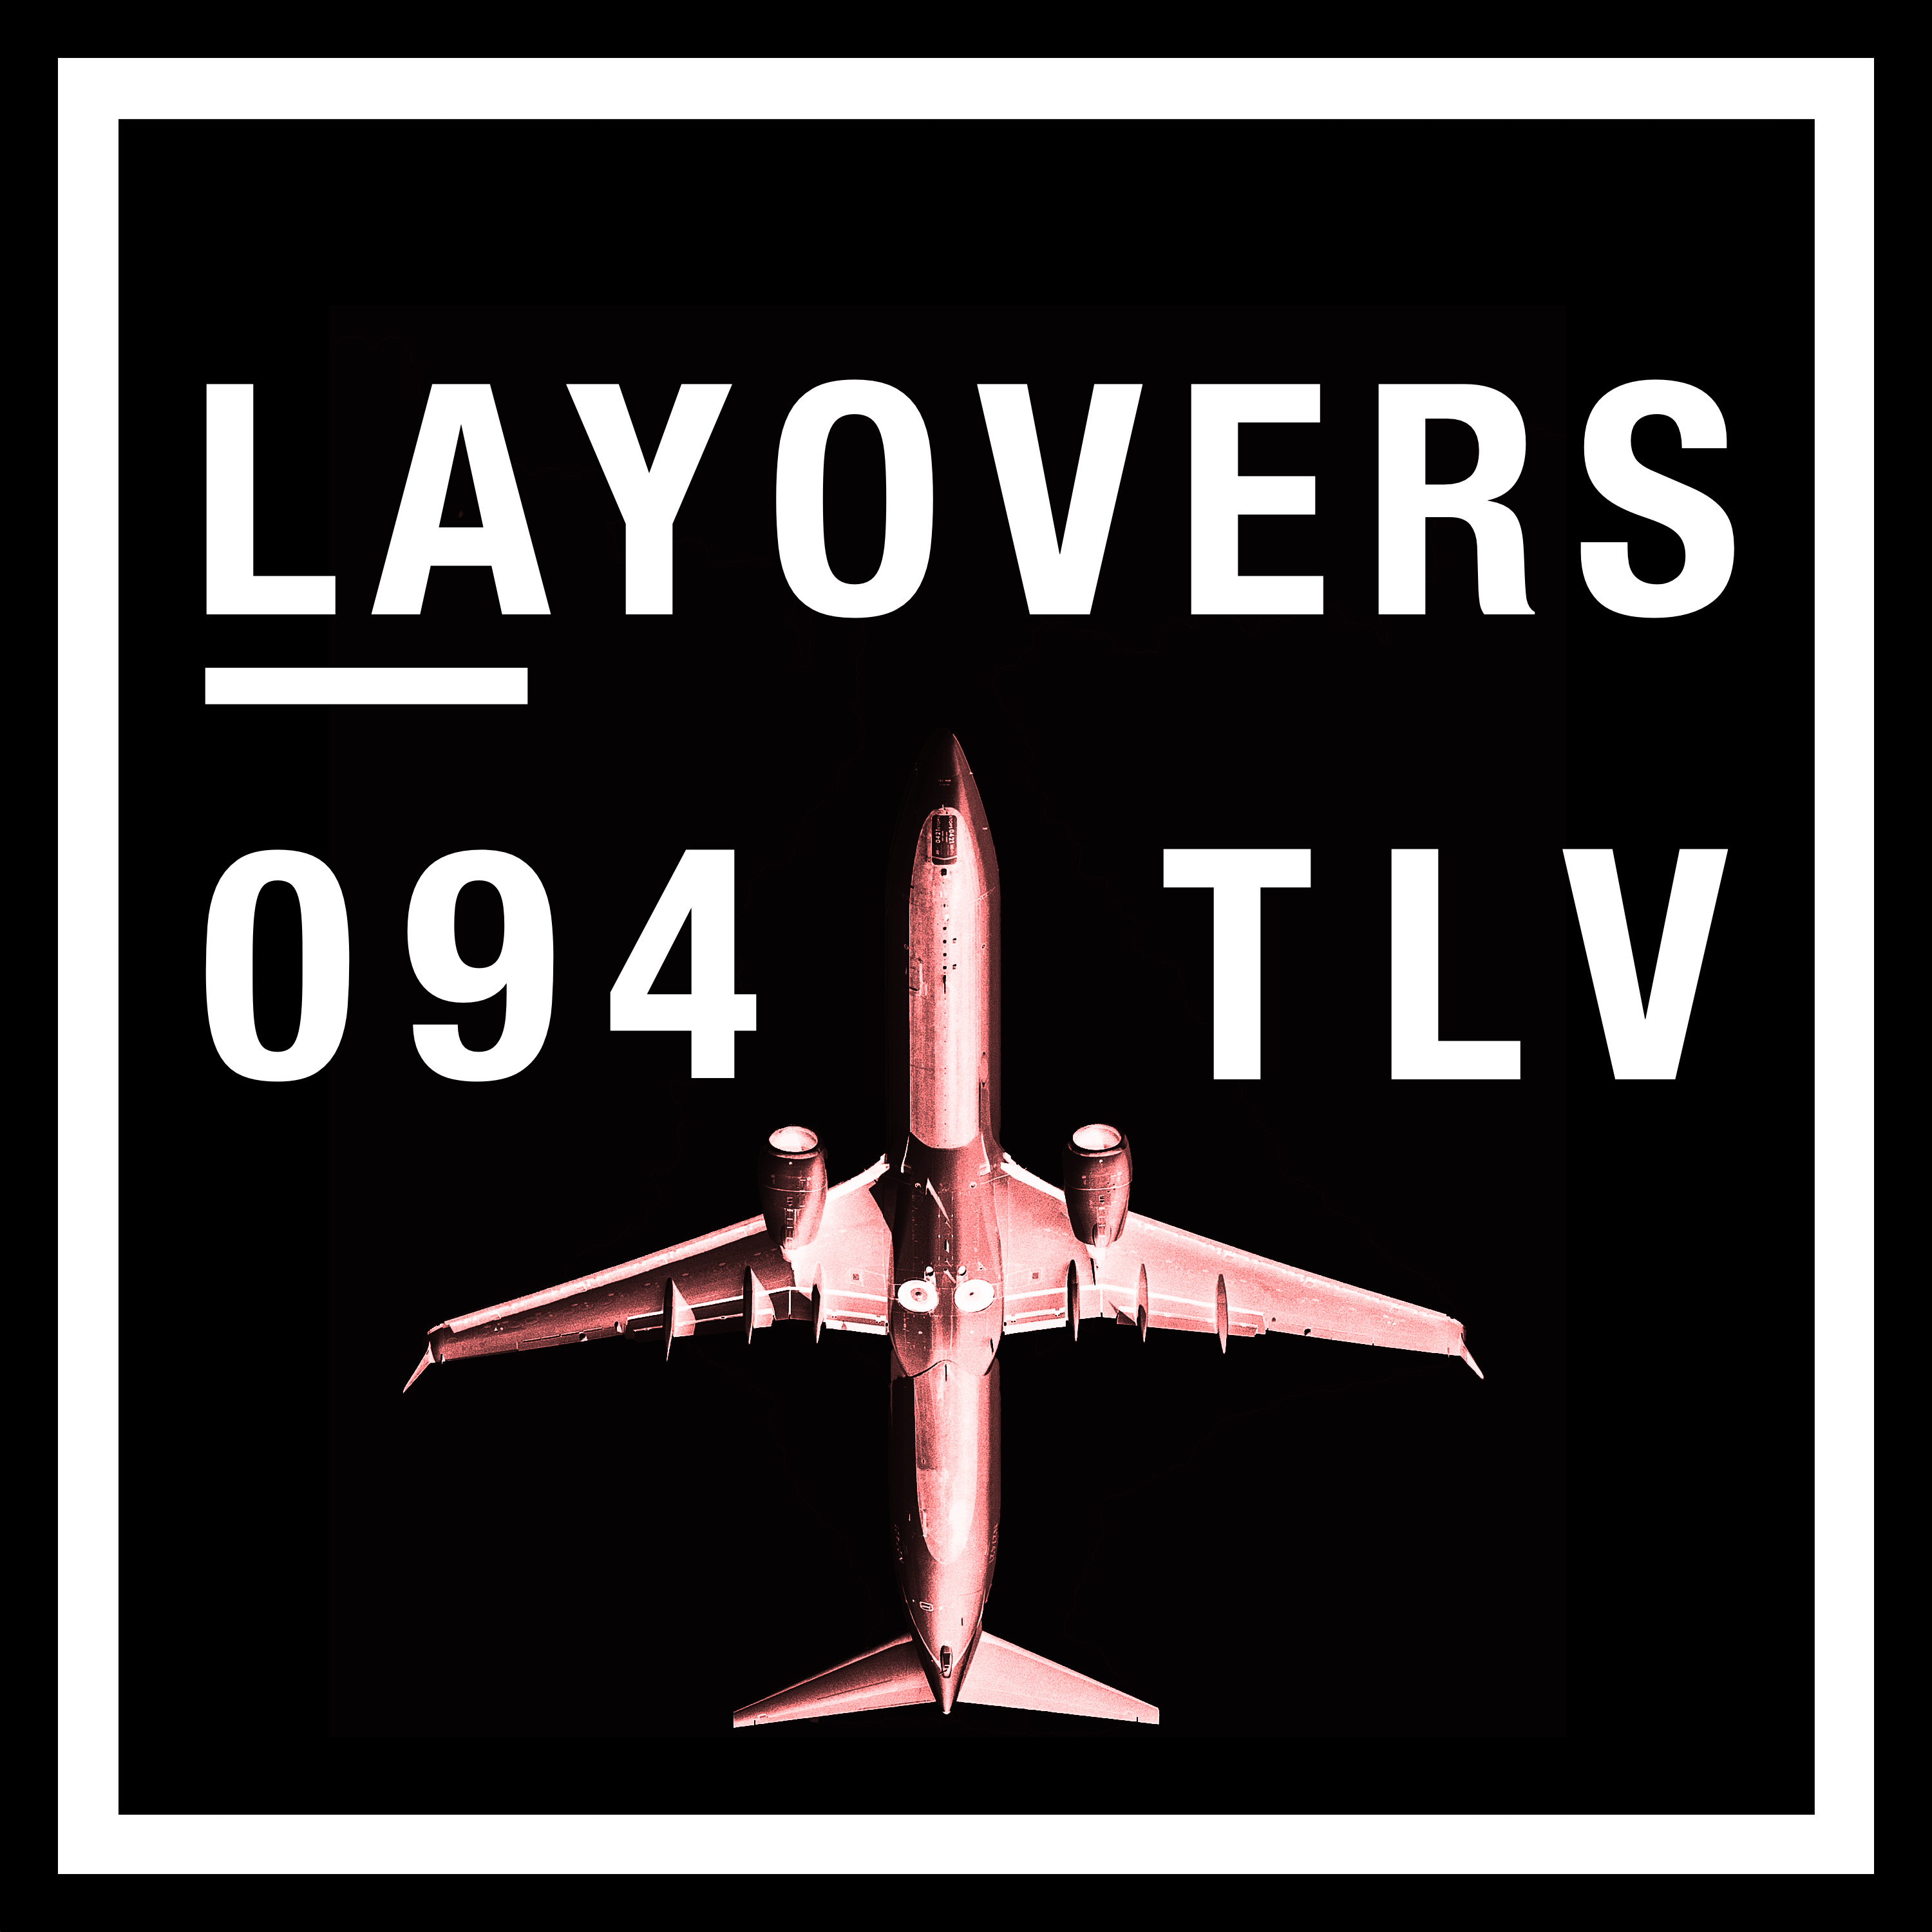 094 TLV - RIP Niki, First beer, Boeing distrust, 747 record, SWISS 77W, JetBlue treason, fly Nando's